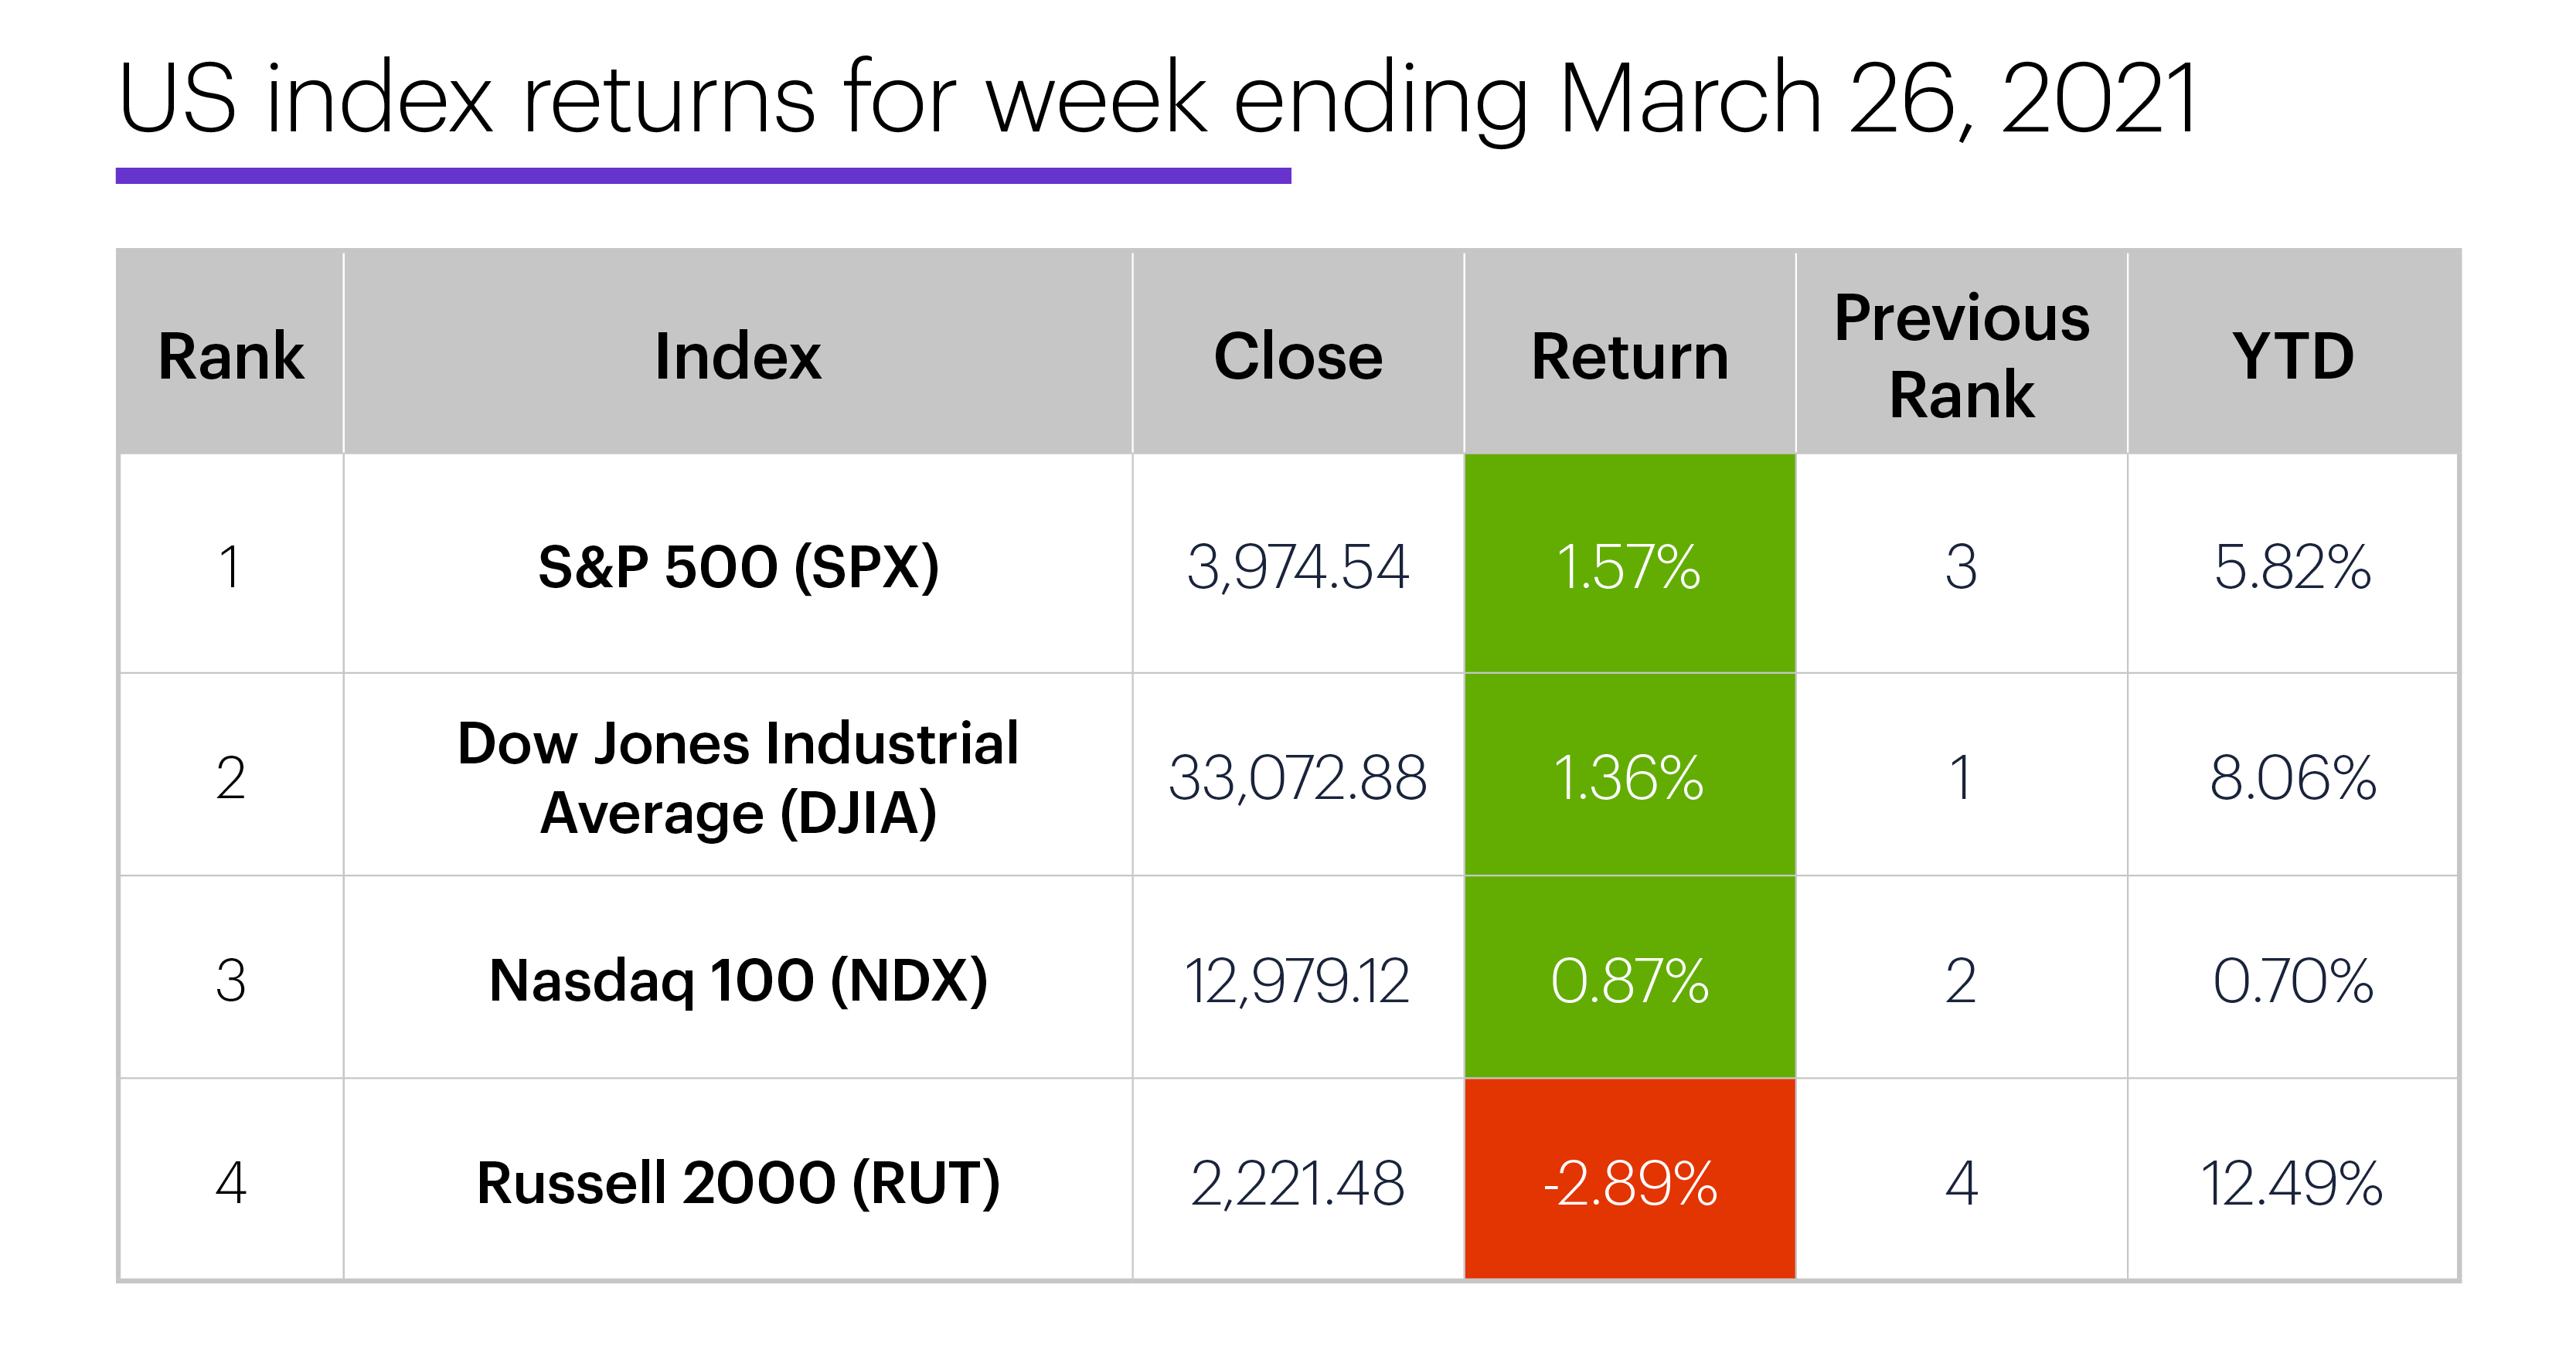 US stock index performance table for week ending 3/26/20. S&P 500 (SPX), Nasdaq 100 (NDX), Russell 2000 (RUT), Dow Jones Industrial Average (DJIA).